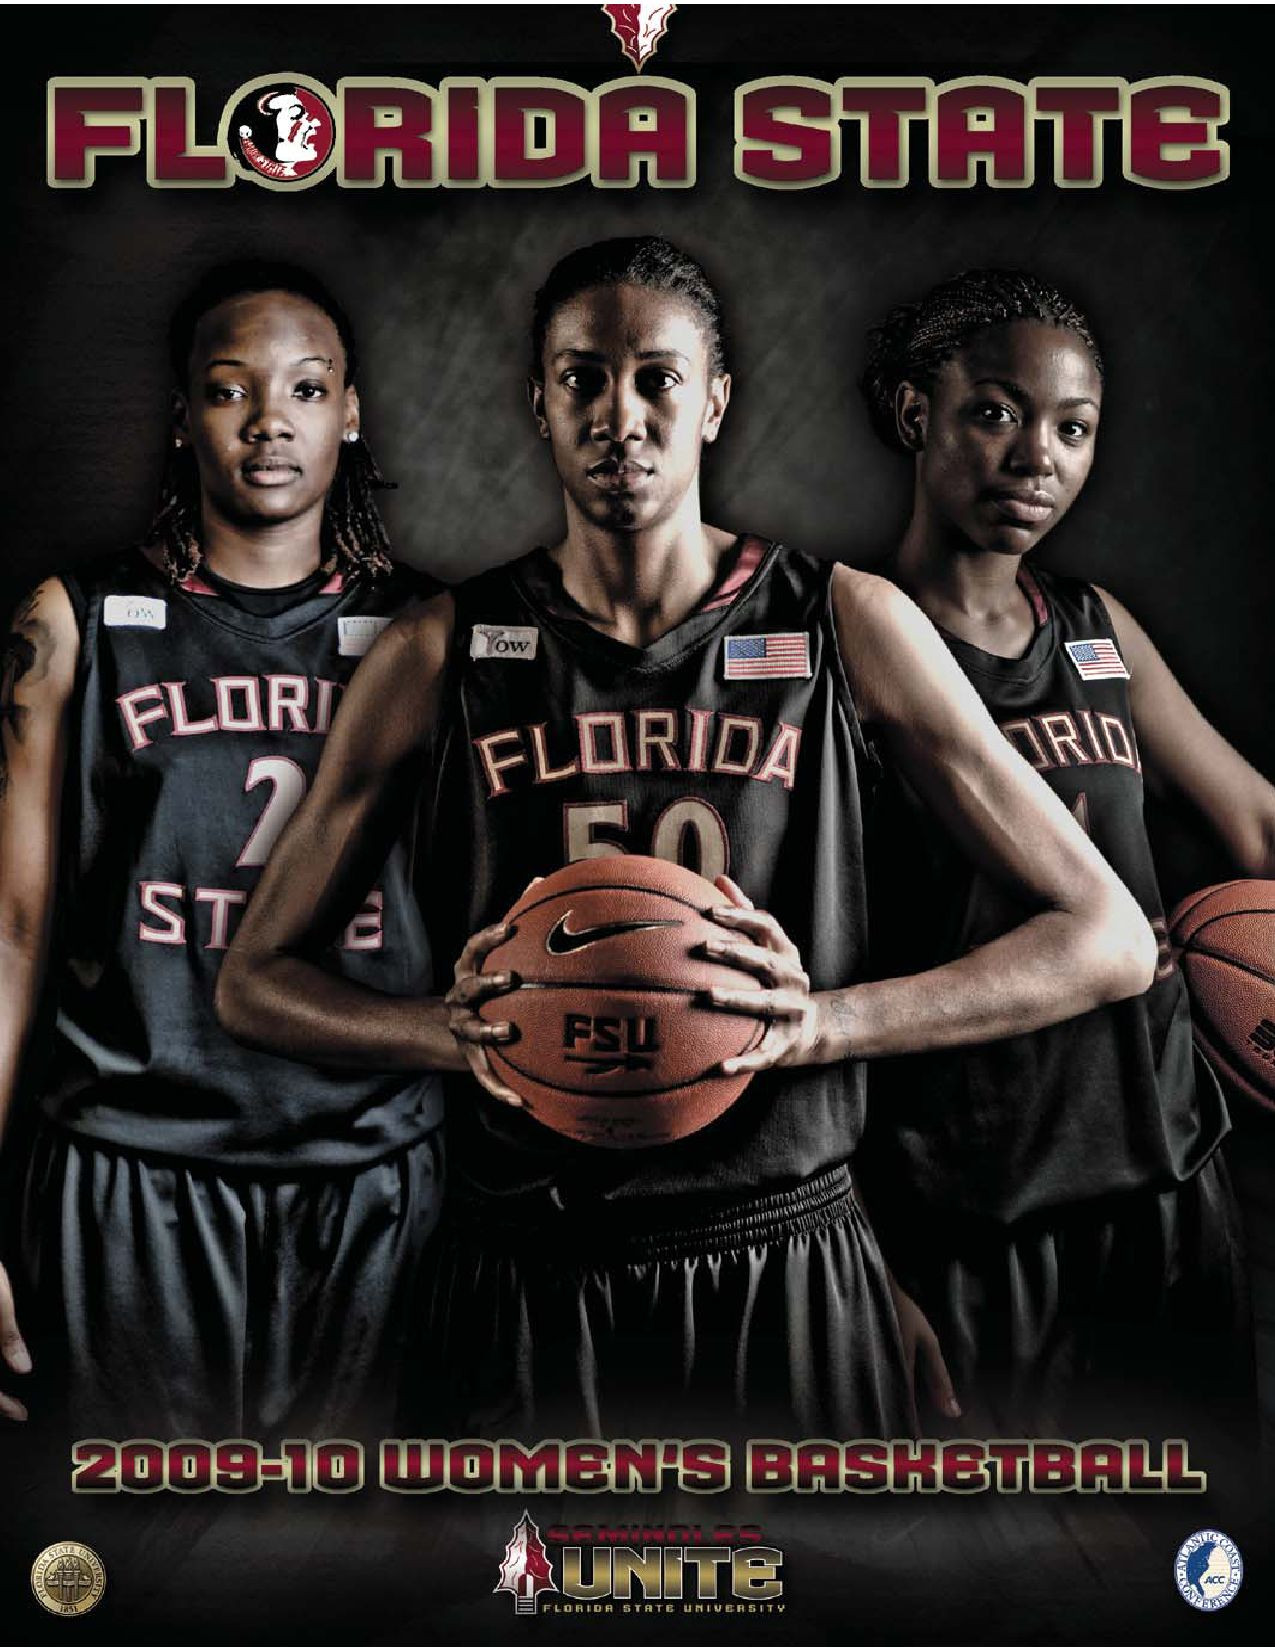 Florida State Women s Basketball Media Guide 2009 10 by Florida State Seminoles issuu